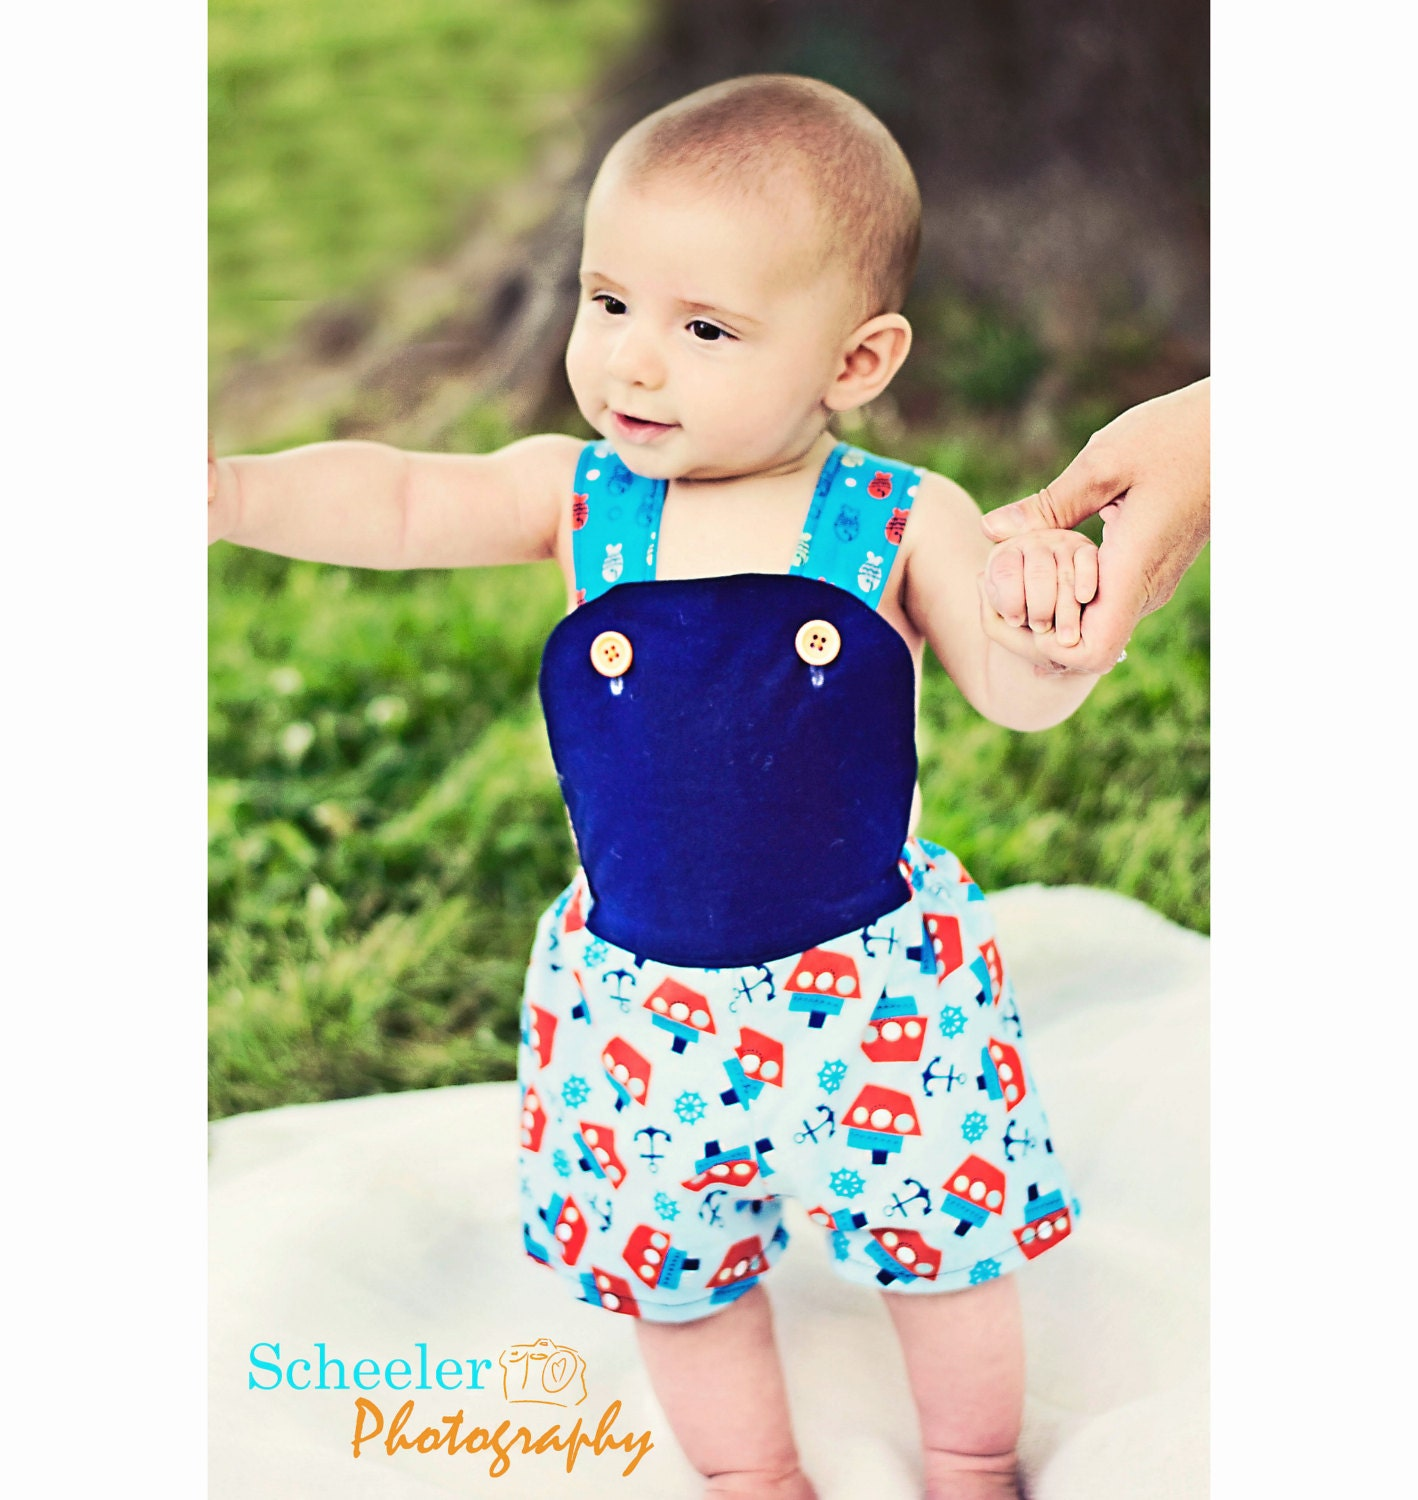 Available in a variety of fun and colourful styles, our range is suitable for both baby boys and baby girls aged up to 4 years old. Designed to protect delicate skin from the sun's harmful rays, our baby sun suits are made from lightweight UPF 50+ protective fabrics.